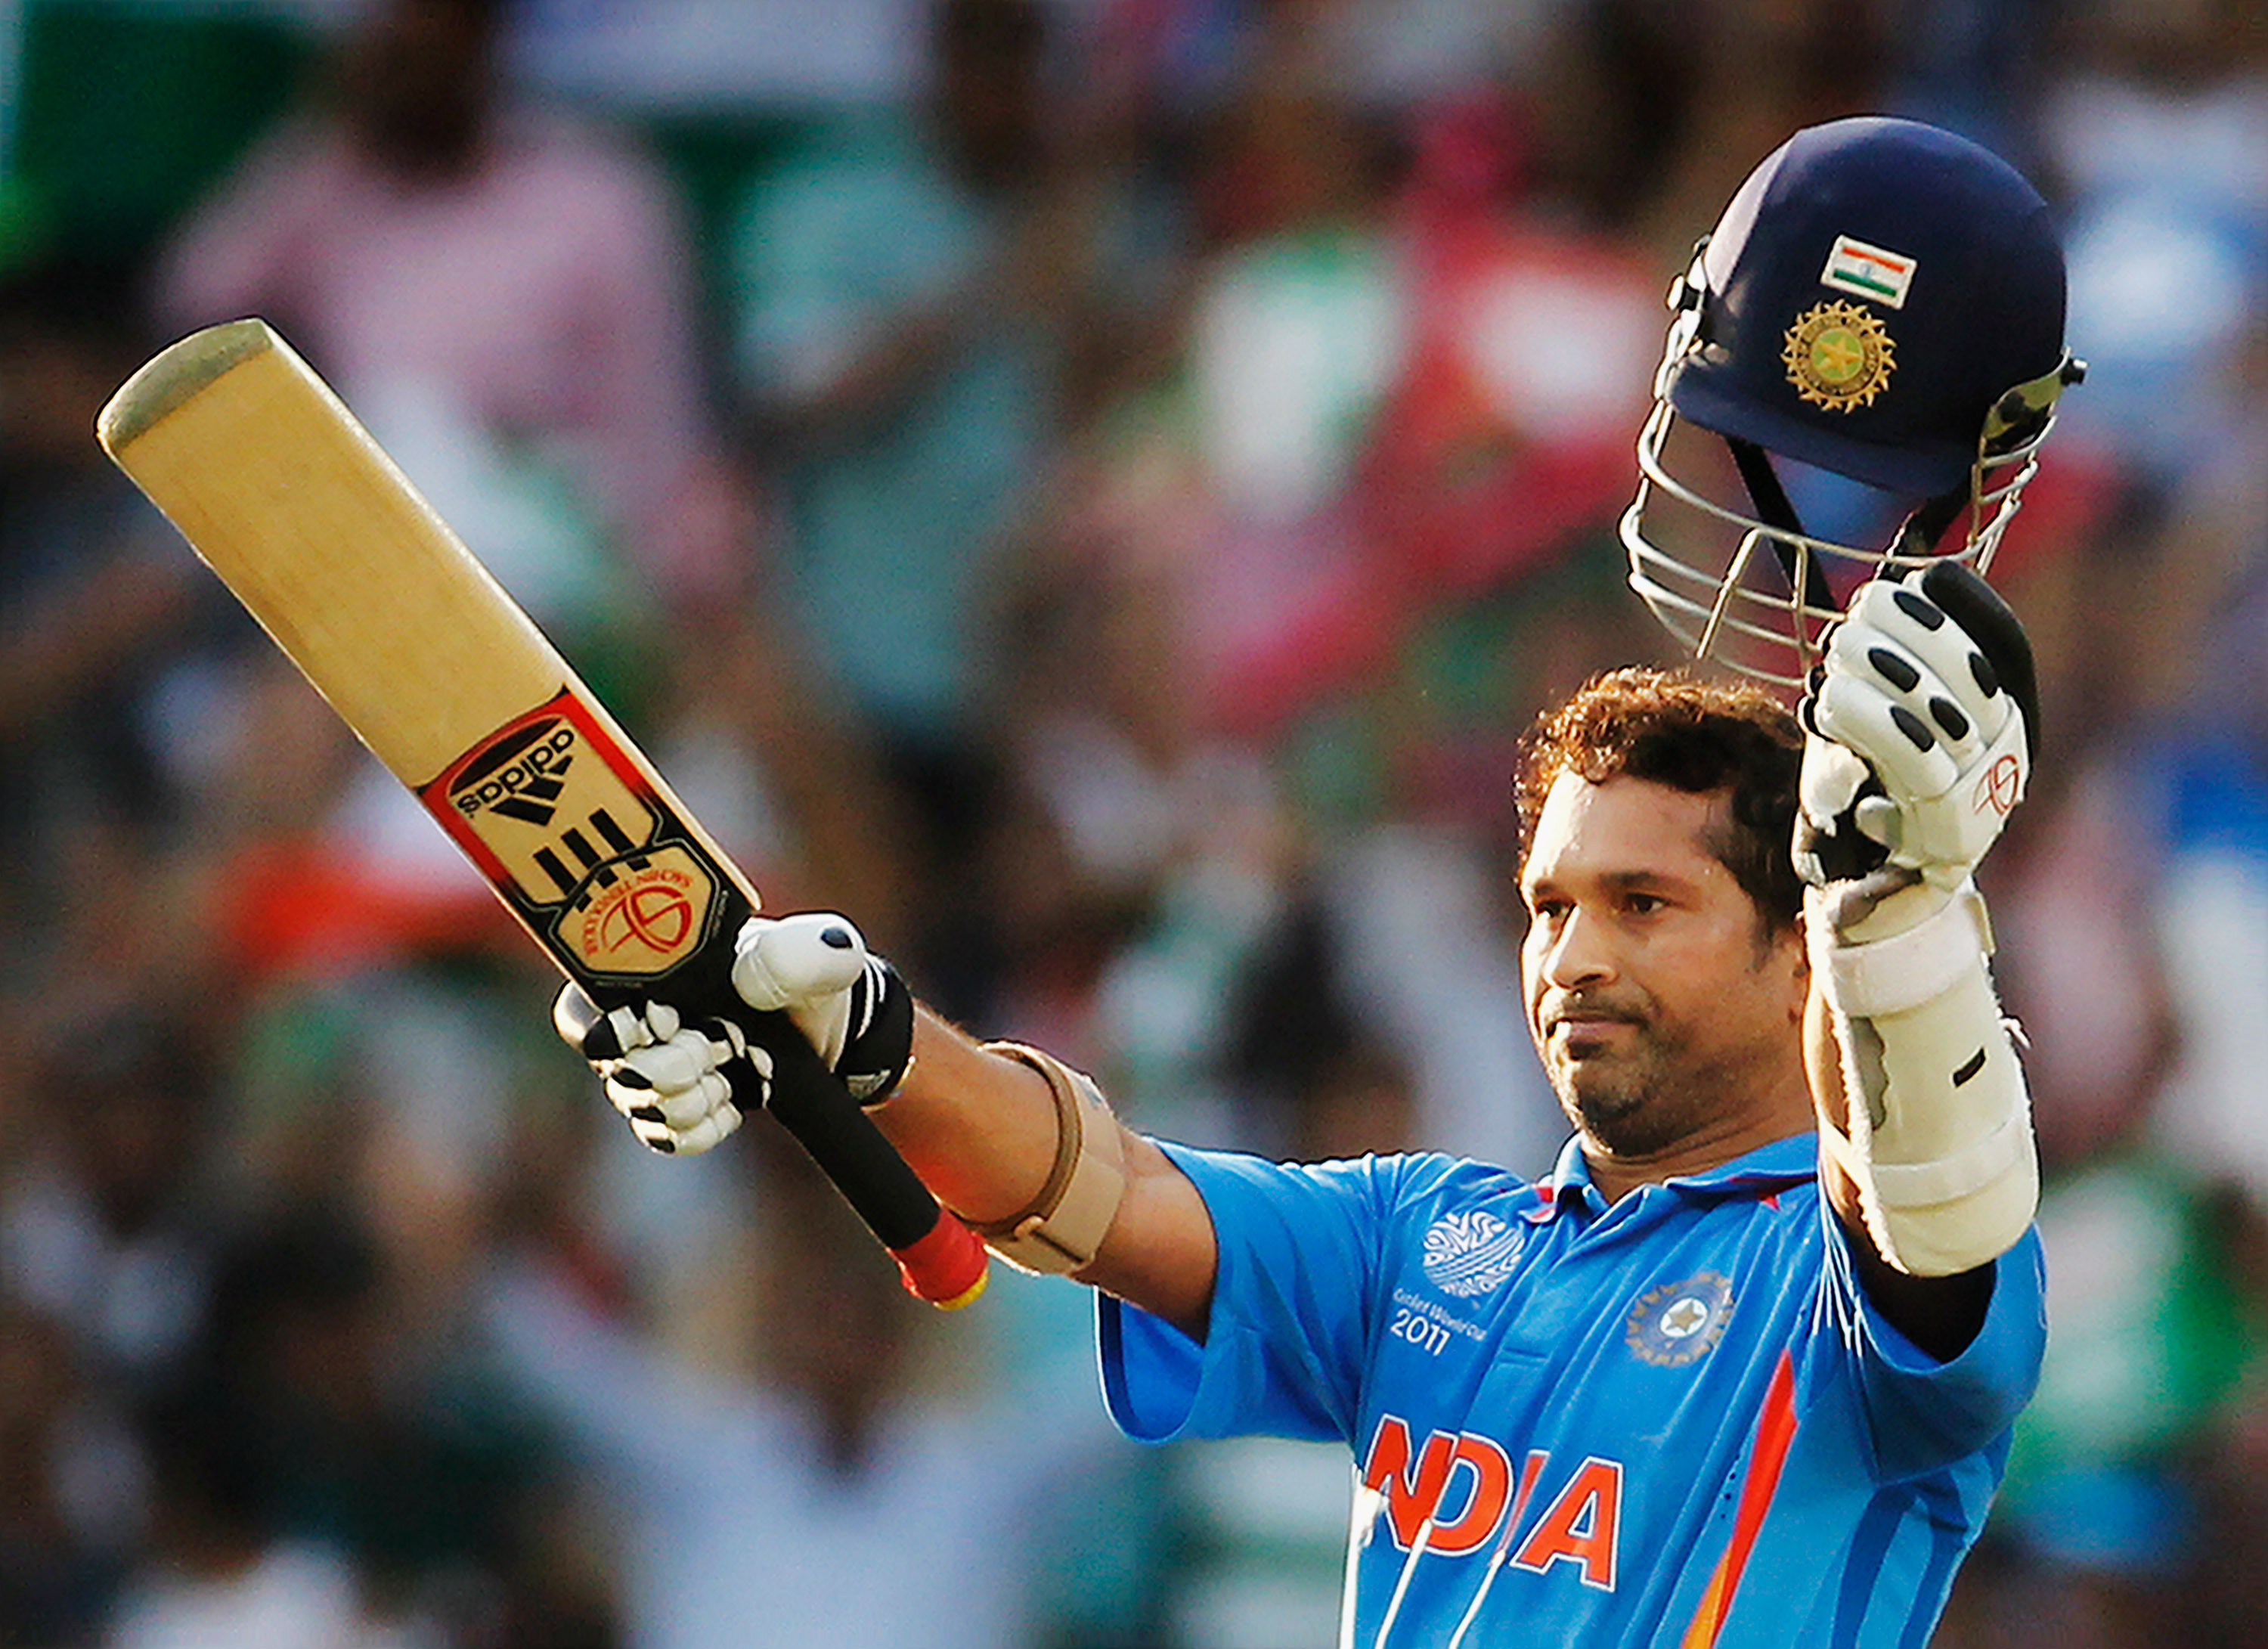 Sachin Tendulkar plays late-night gully cricket with fans